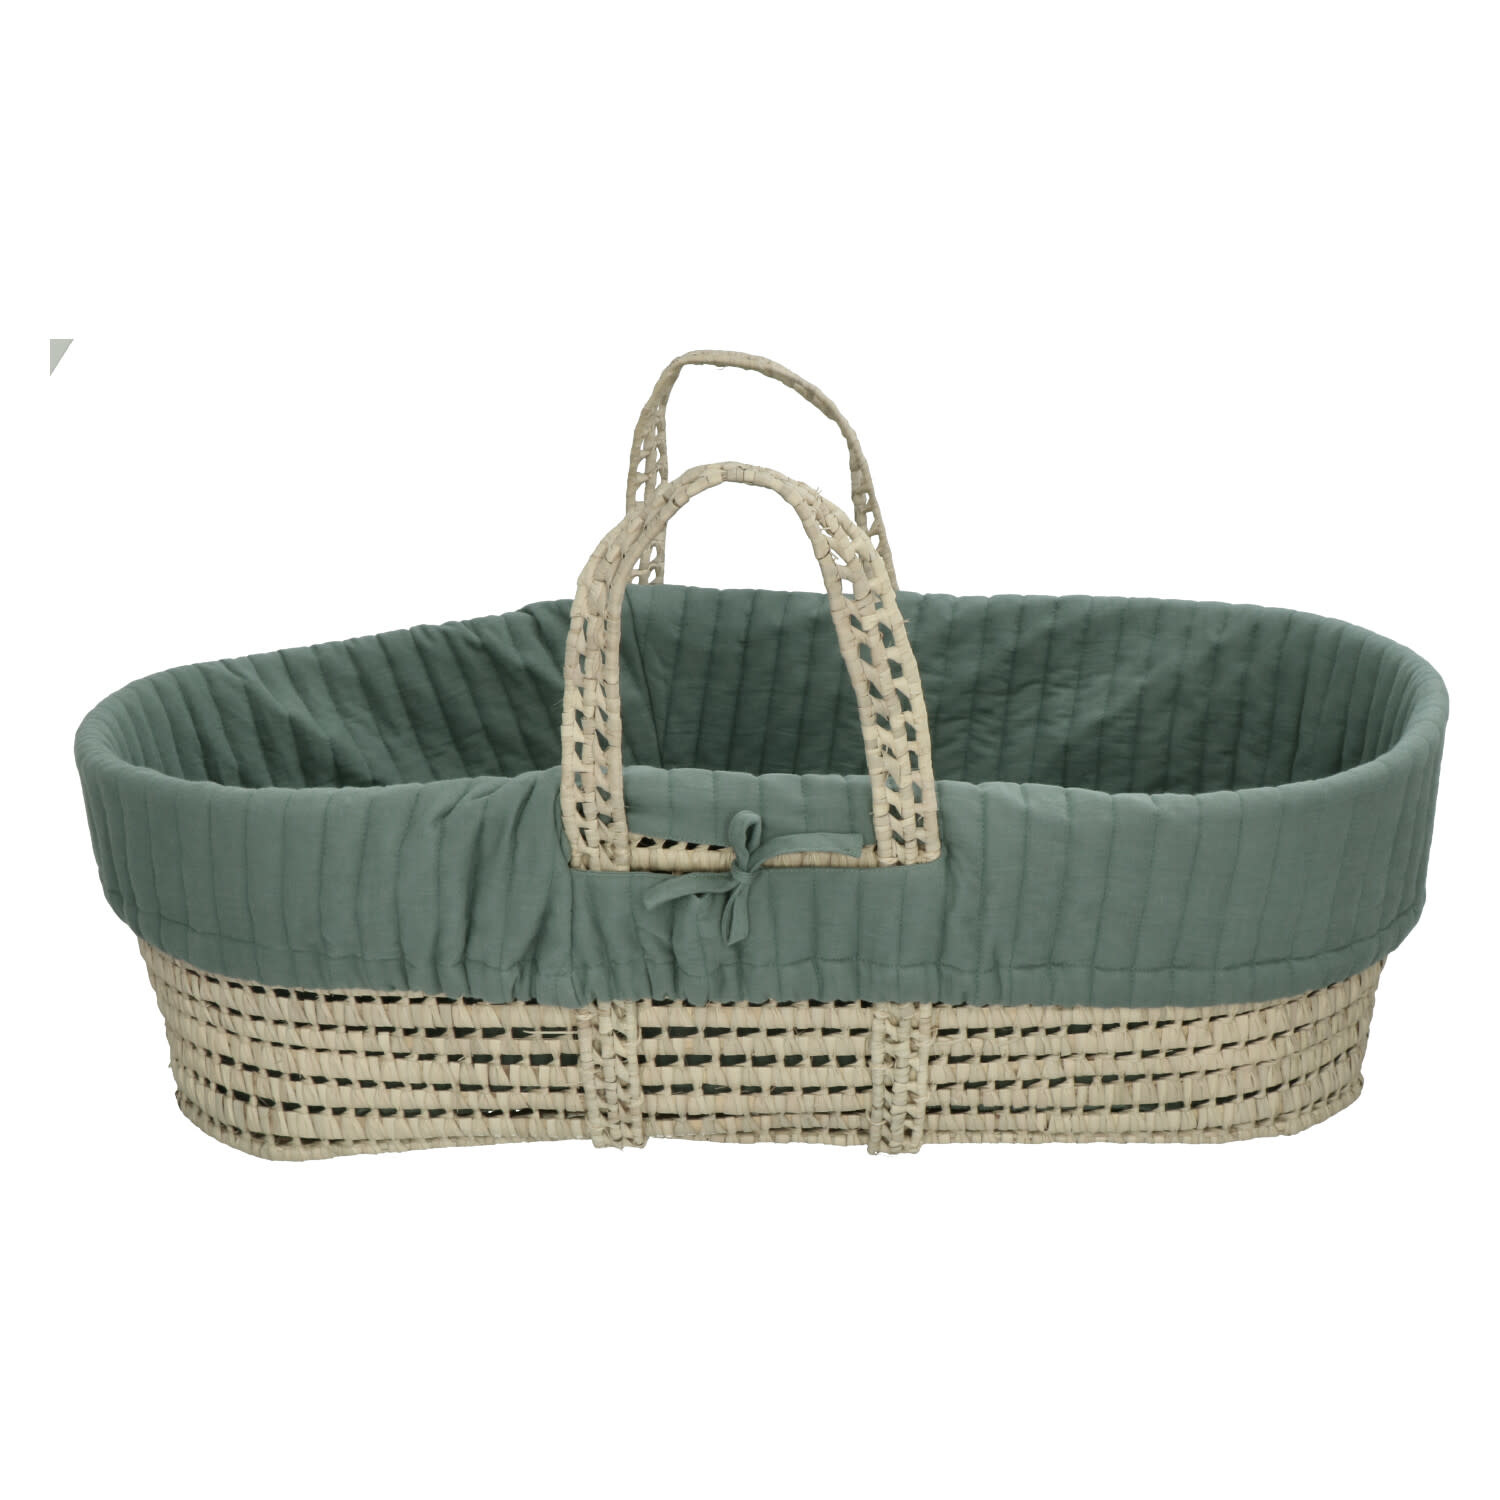 Marley moses basket with linen bay-2